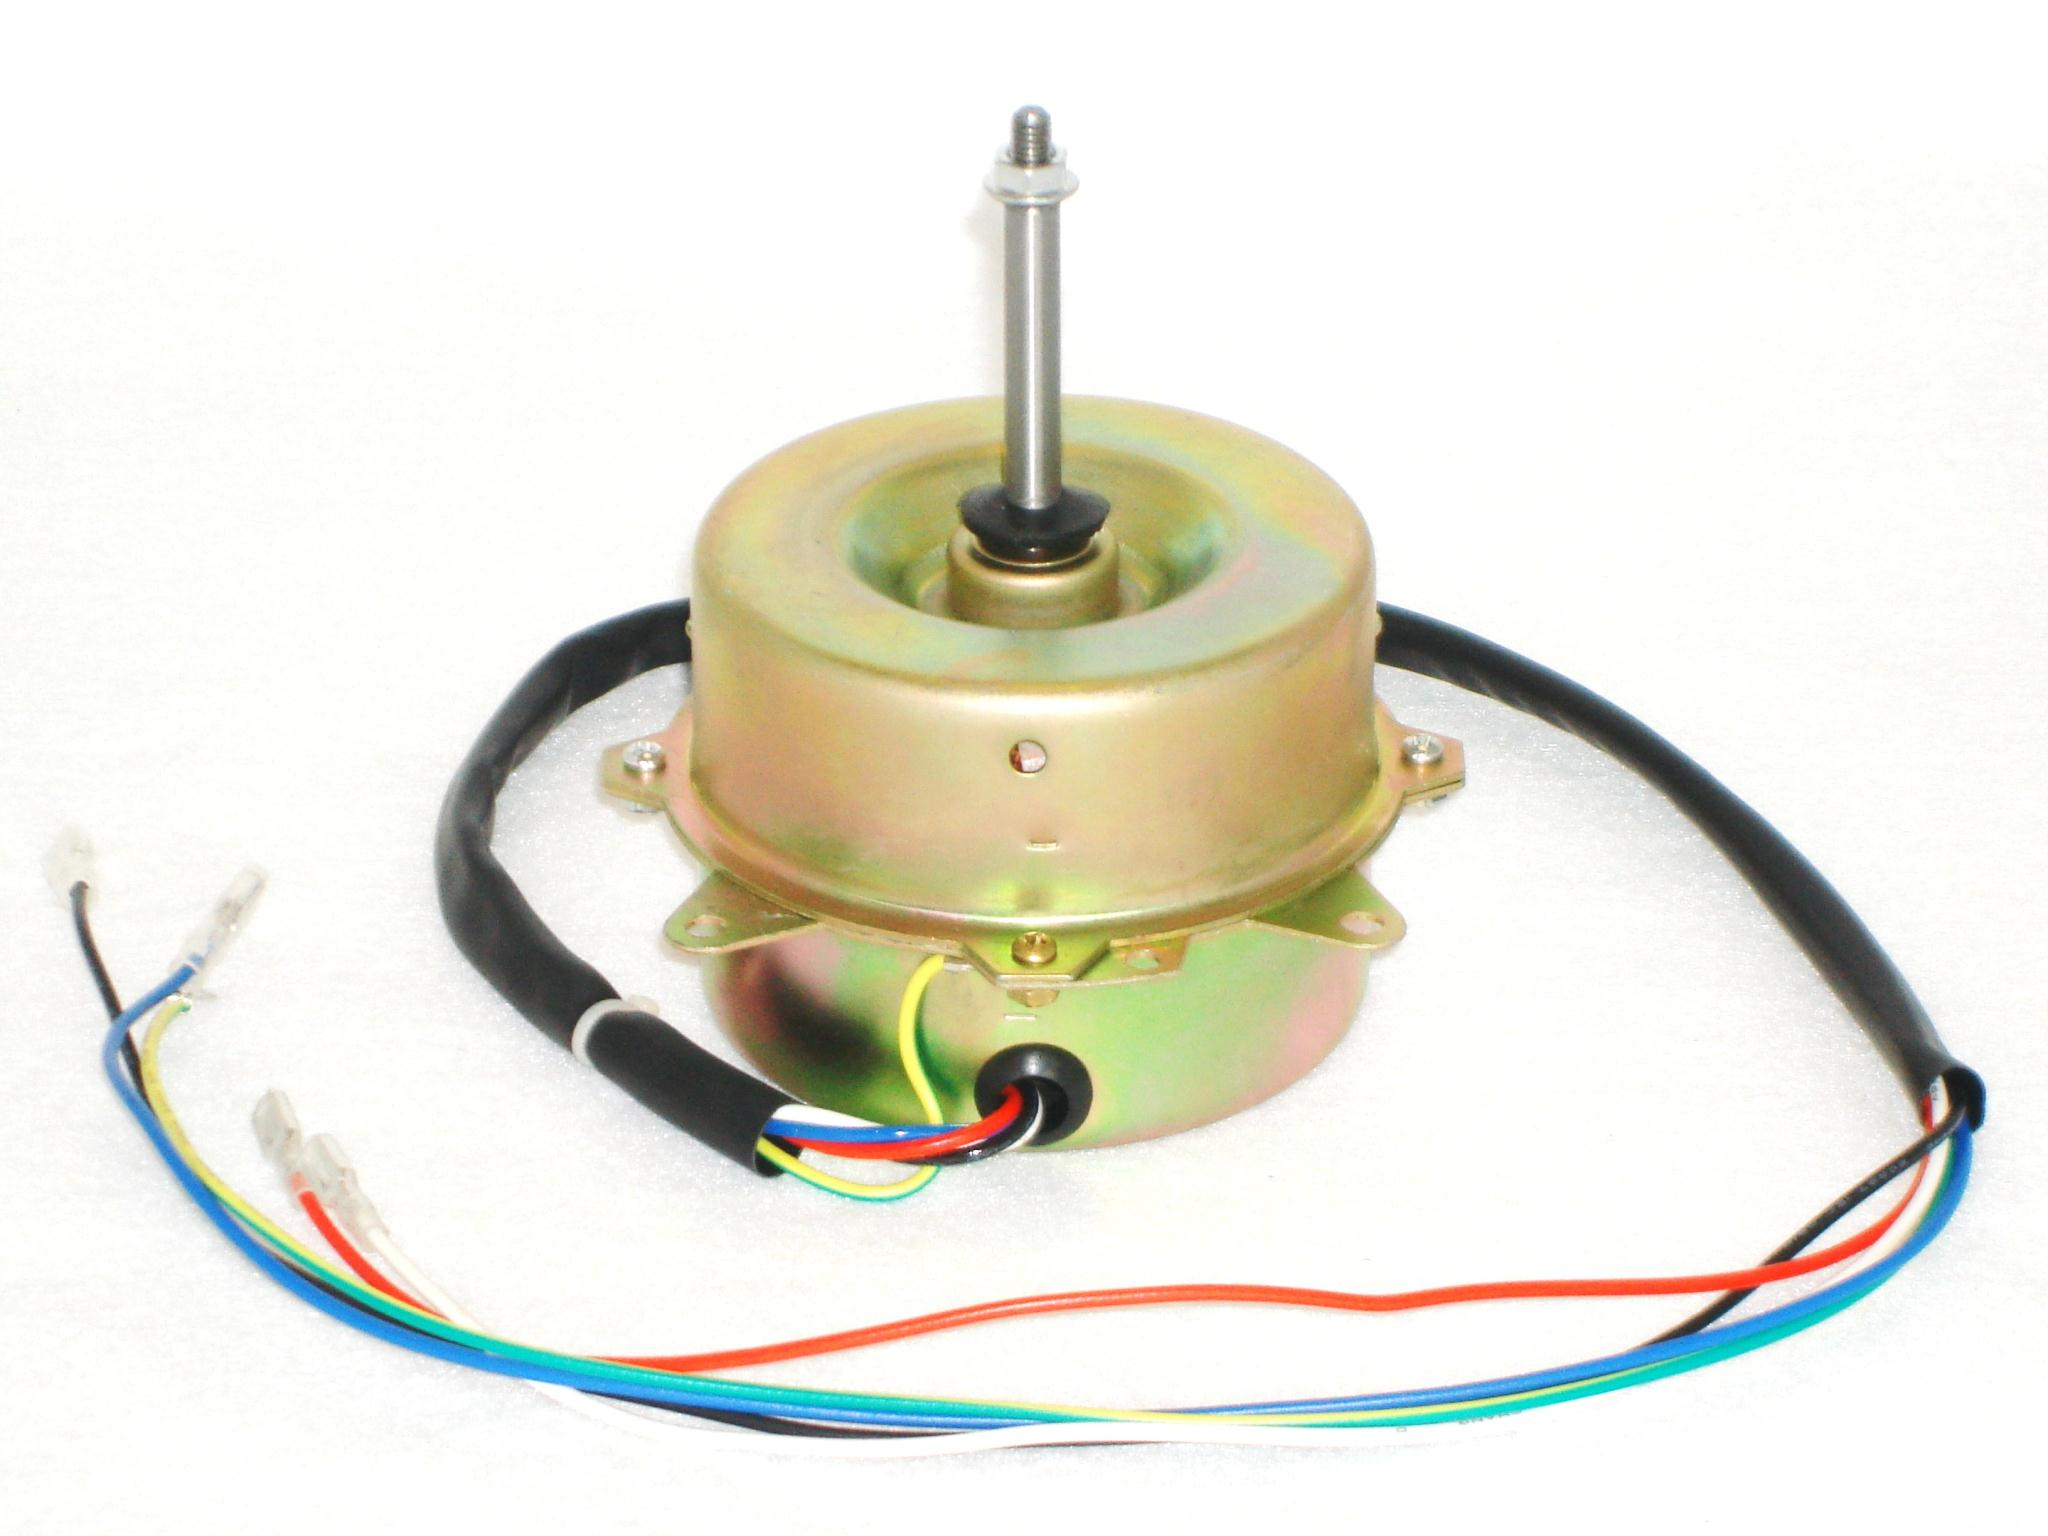 Outdoor Fan Motor For Ductless Mini Split Systems